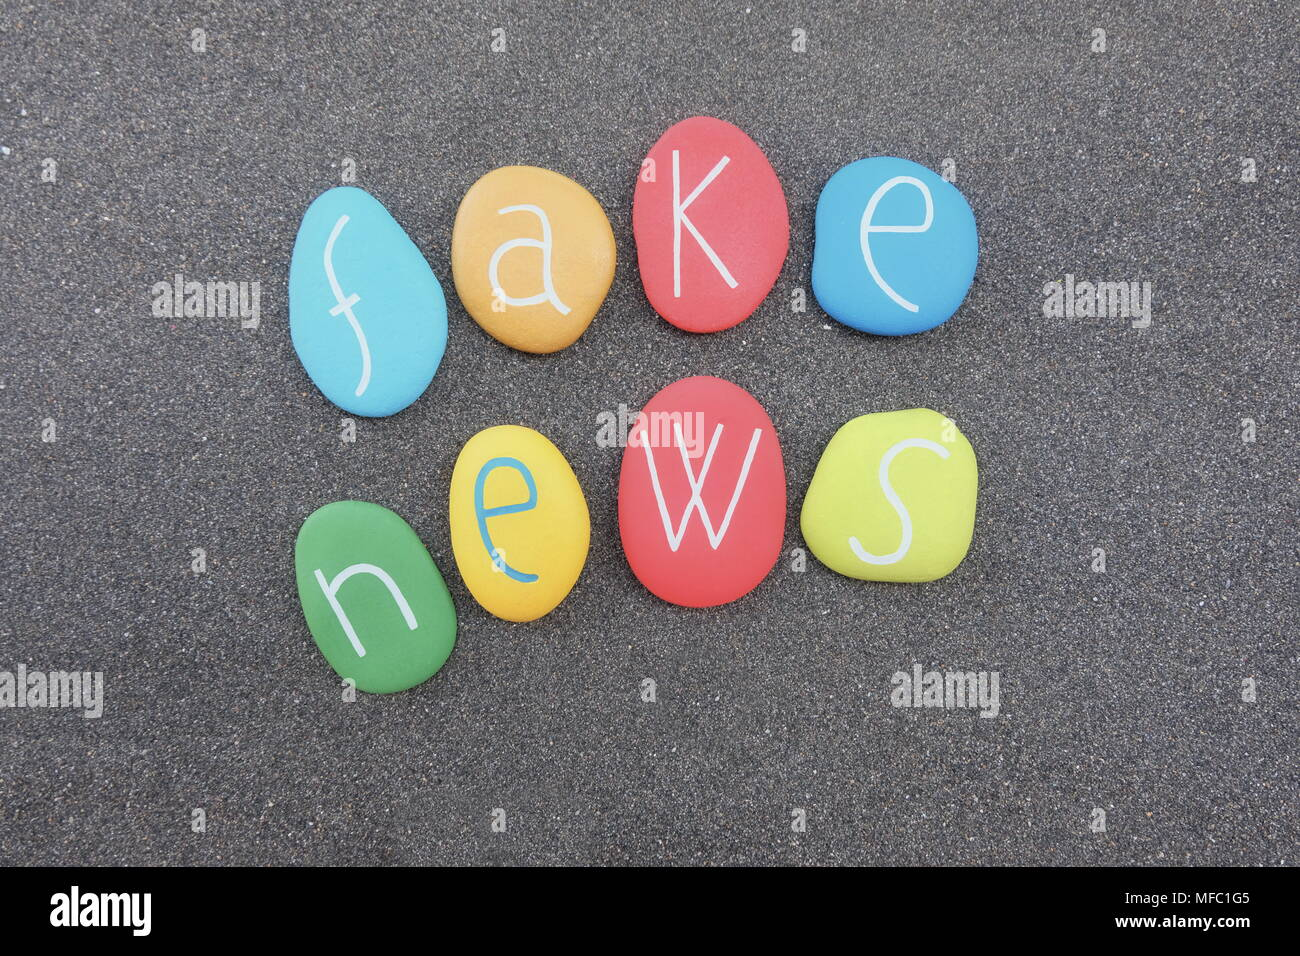 Fake news text with multicolored stones over black volcanic sand Stock Photo